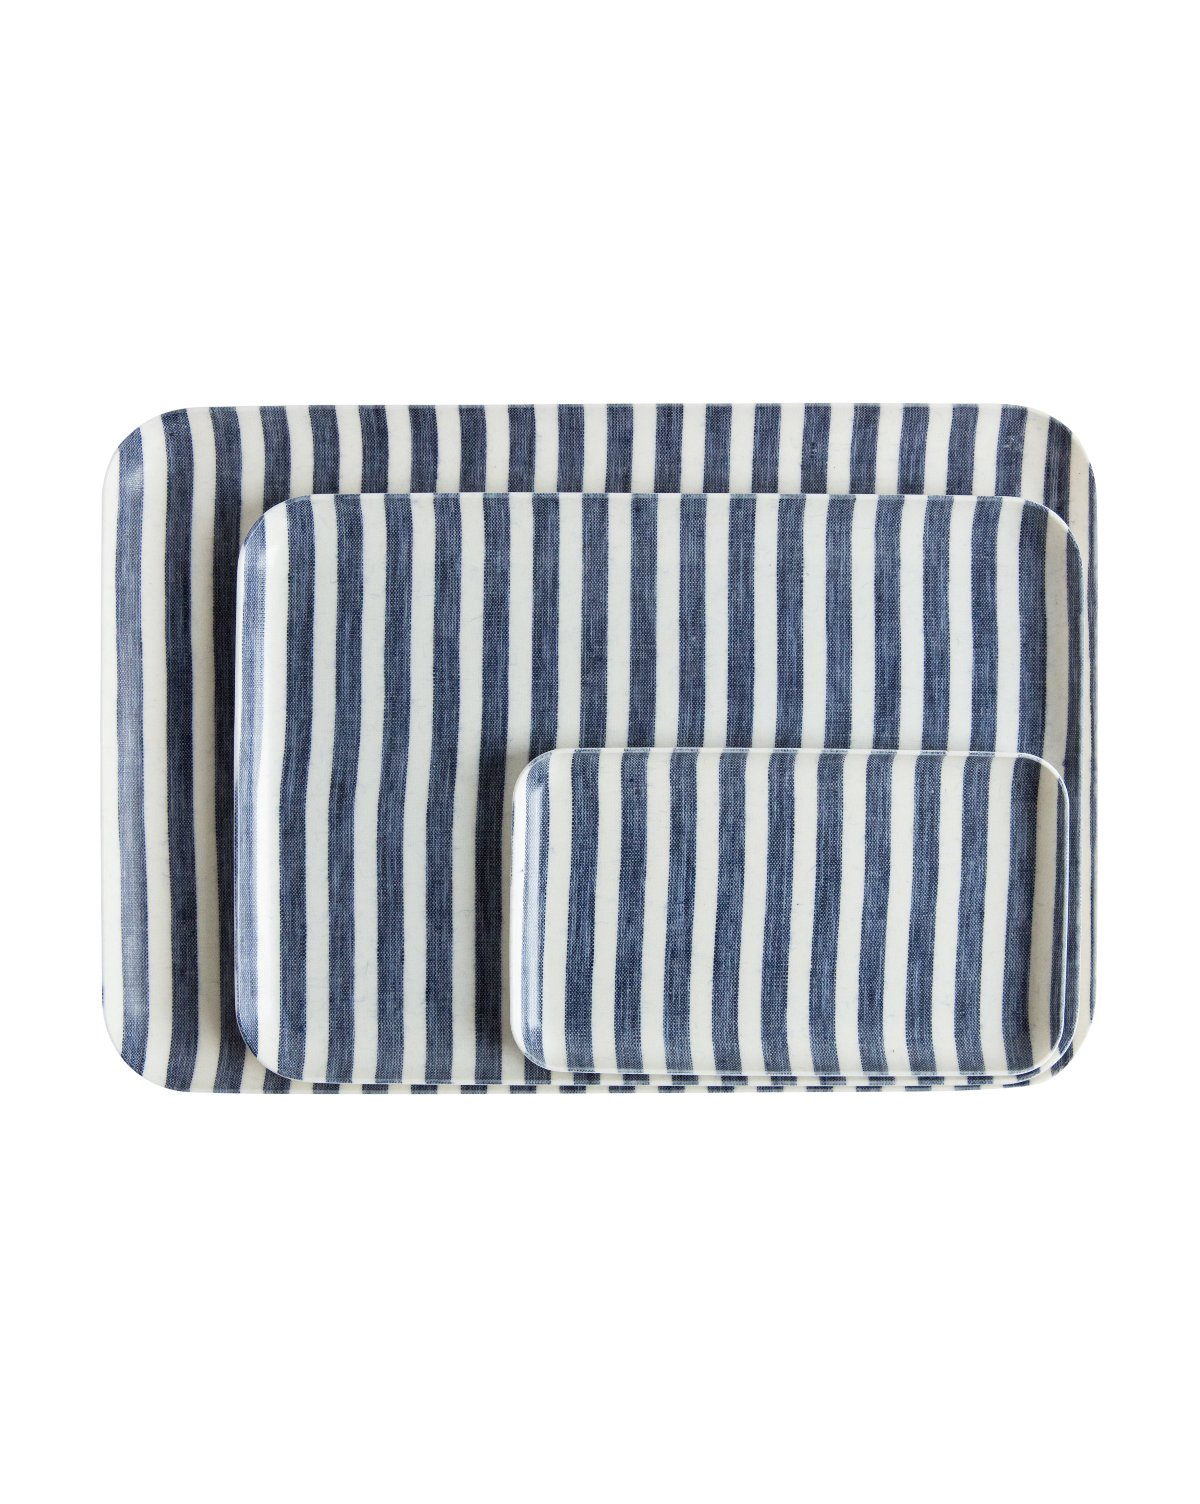 French_Stripe_Linen_Tray_1.jpg